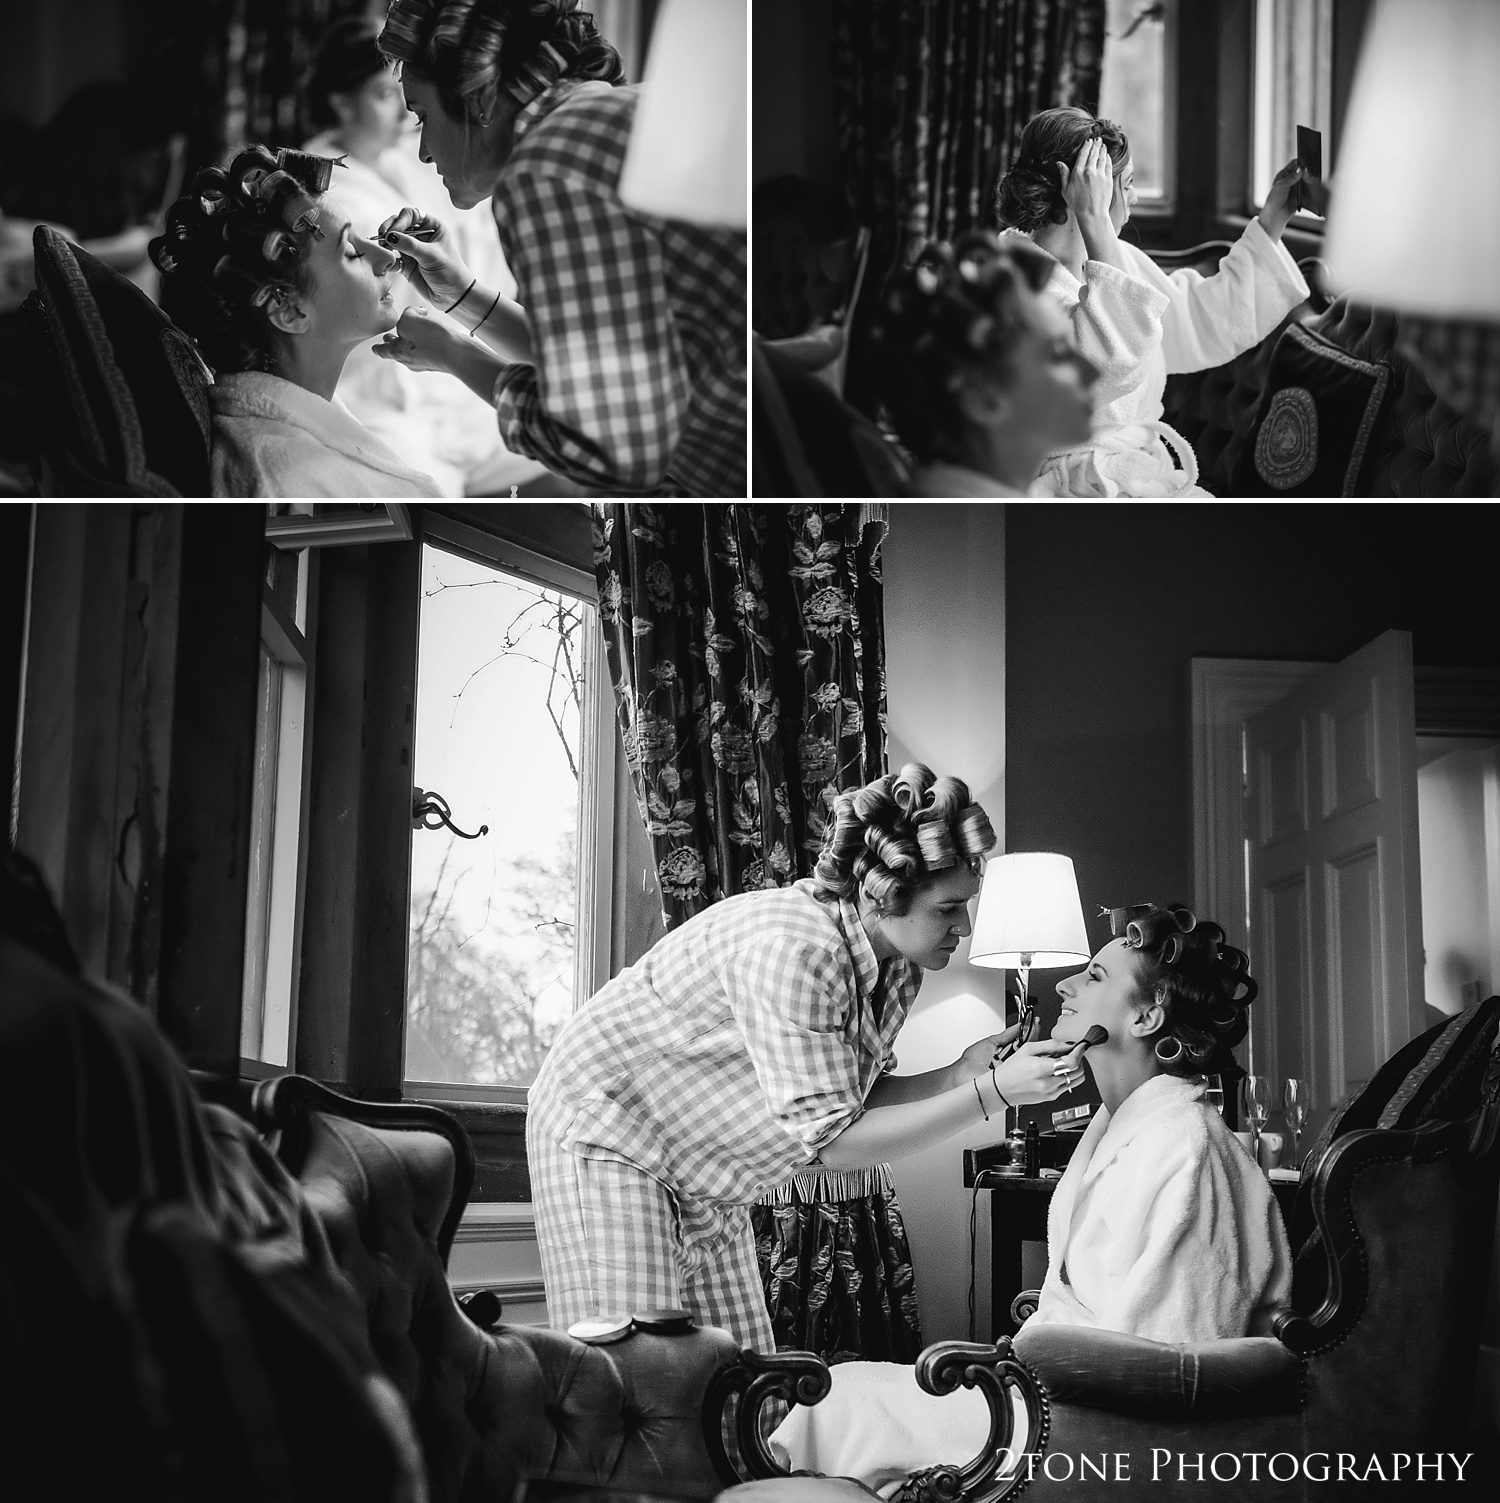 The bride getting ready at Ellingham Hall. Winter wedding photography by www.2tonephotography.co.uk